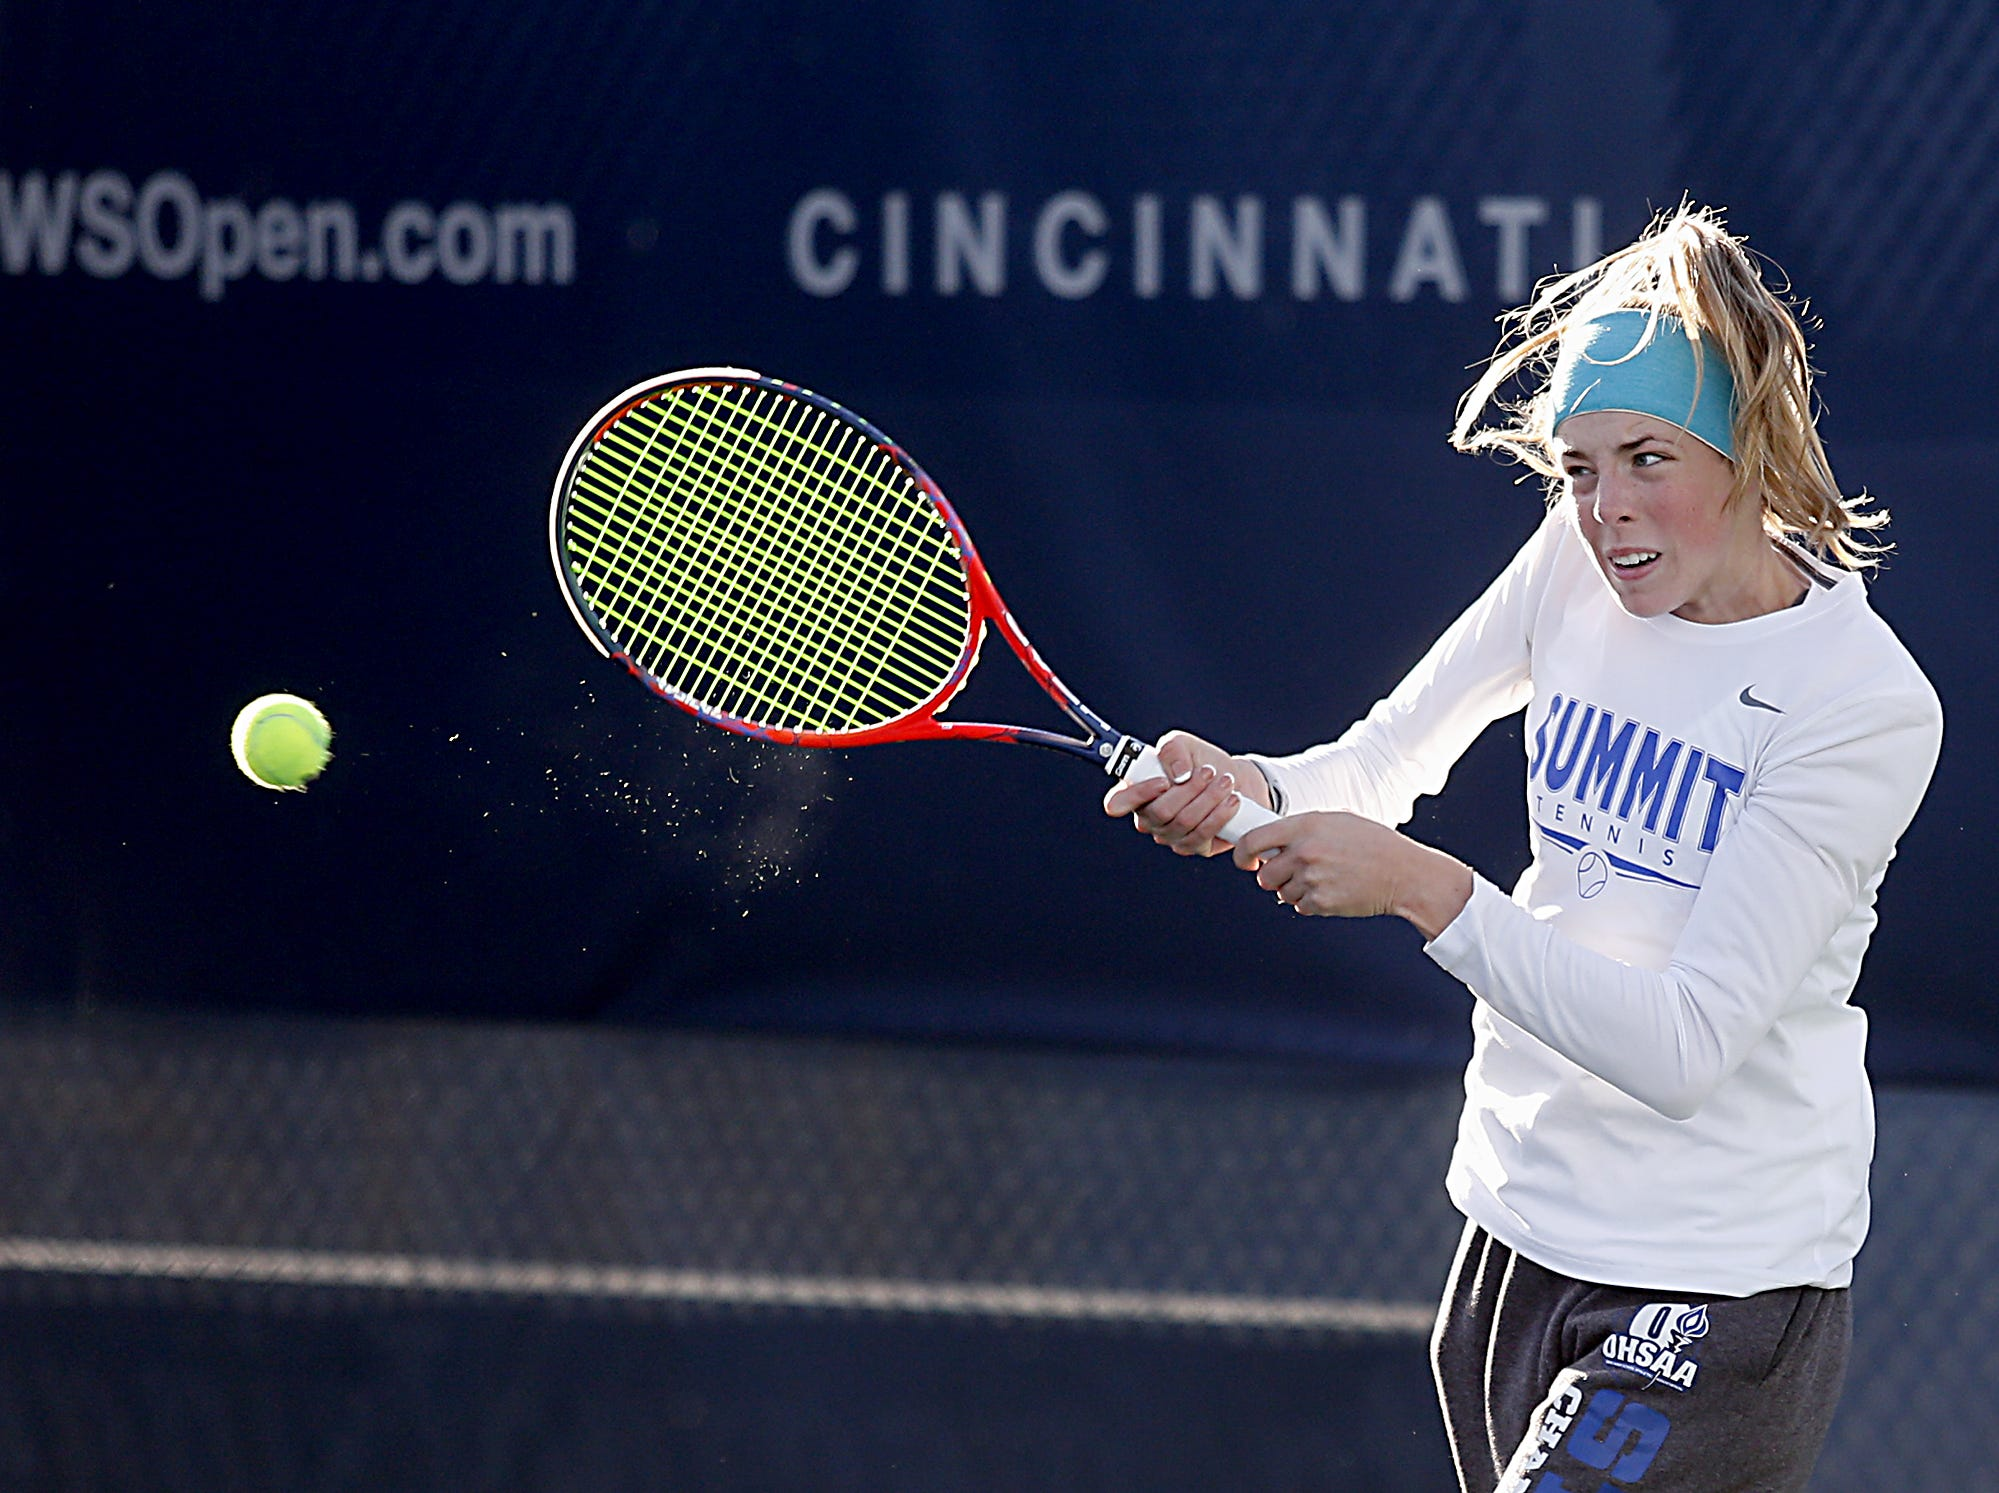 Elizabeth Fahrmeier, of Summit Country Day, returns a volley during her Division II singles bracket at the Lindner Family Tennis Center in Mason Friday, Oct. 19, 2018.